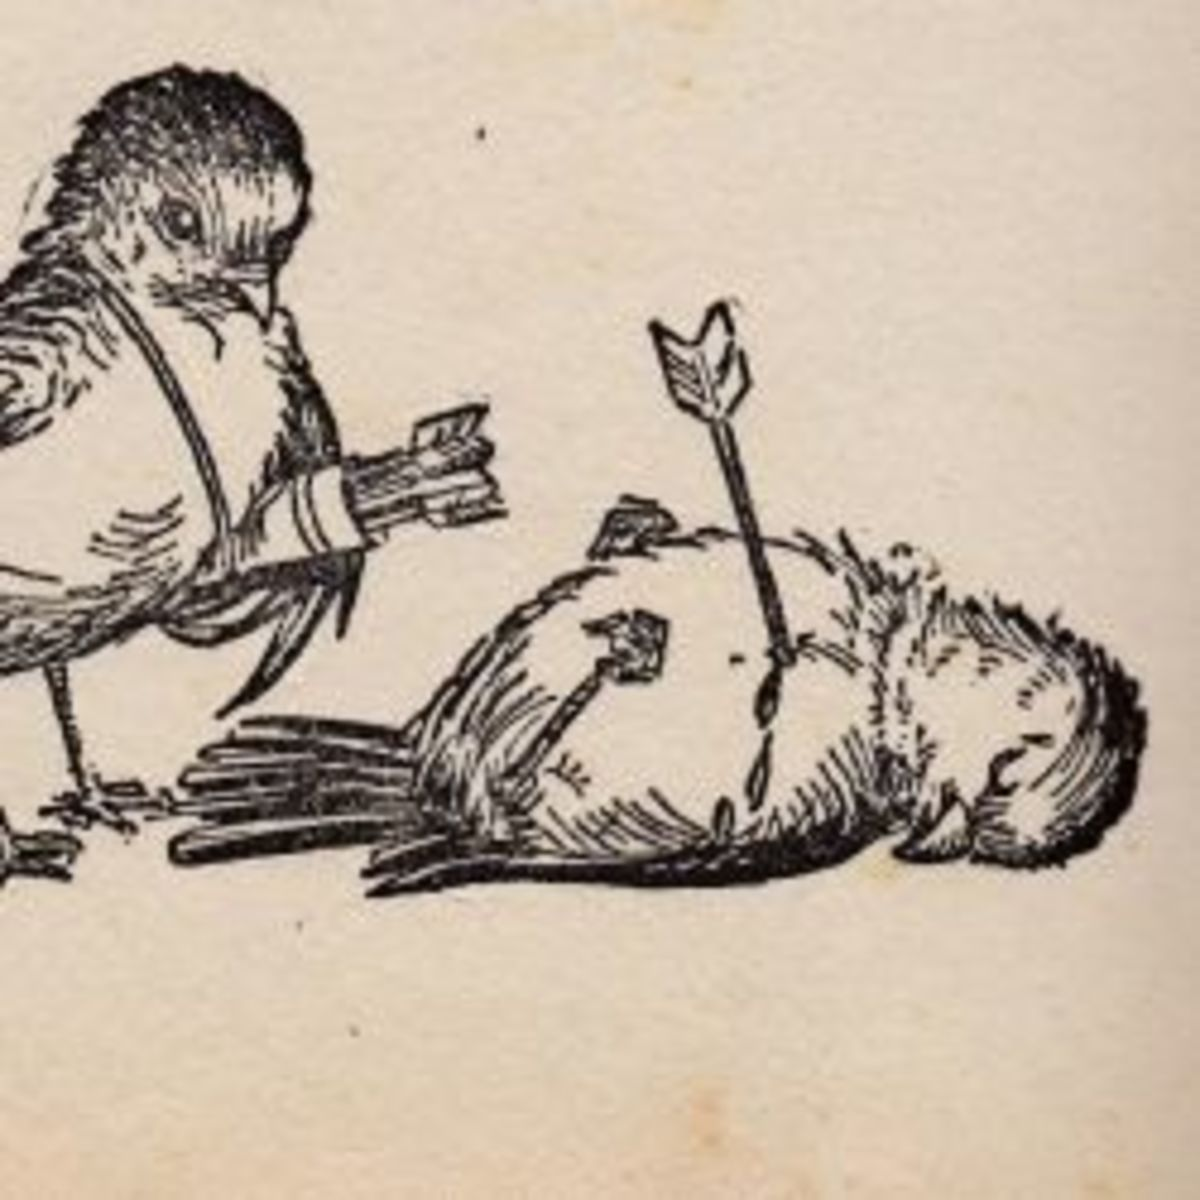 An illustration from my Great Aunt's nursery rhyme book belonging to her son, Ainsley.